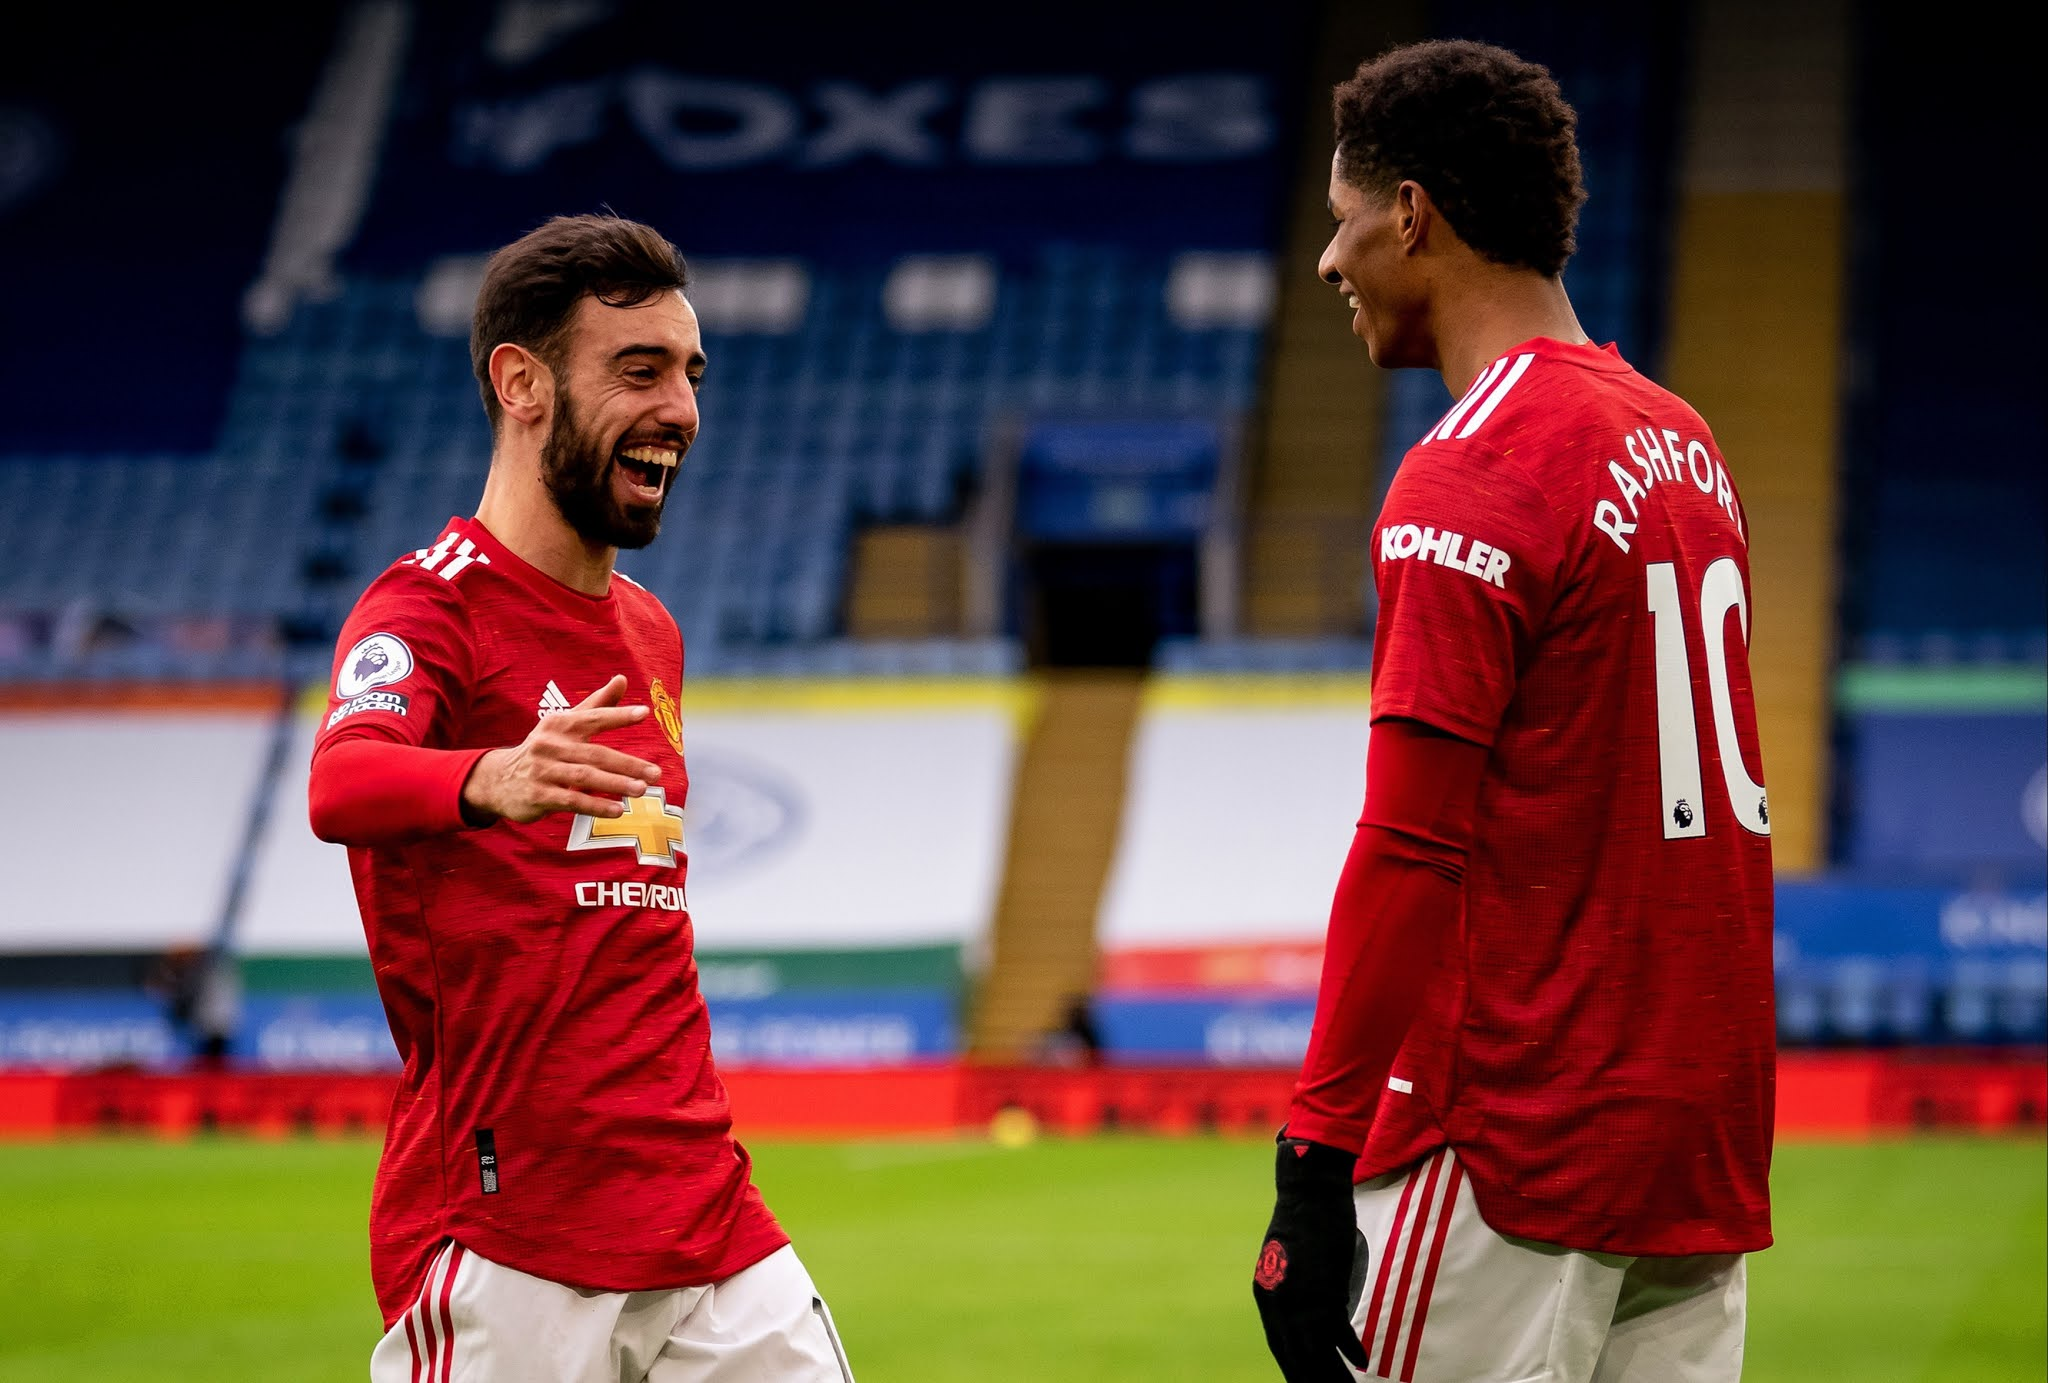 Man United's Bruno Fernandes and Marcus Rashford